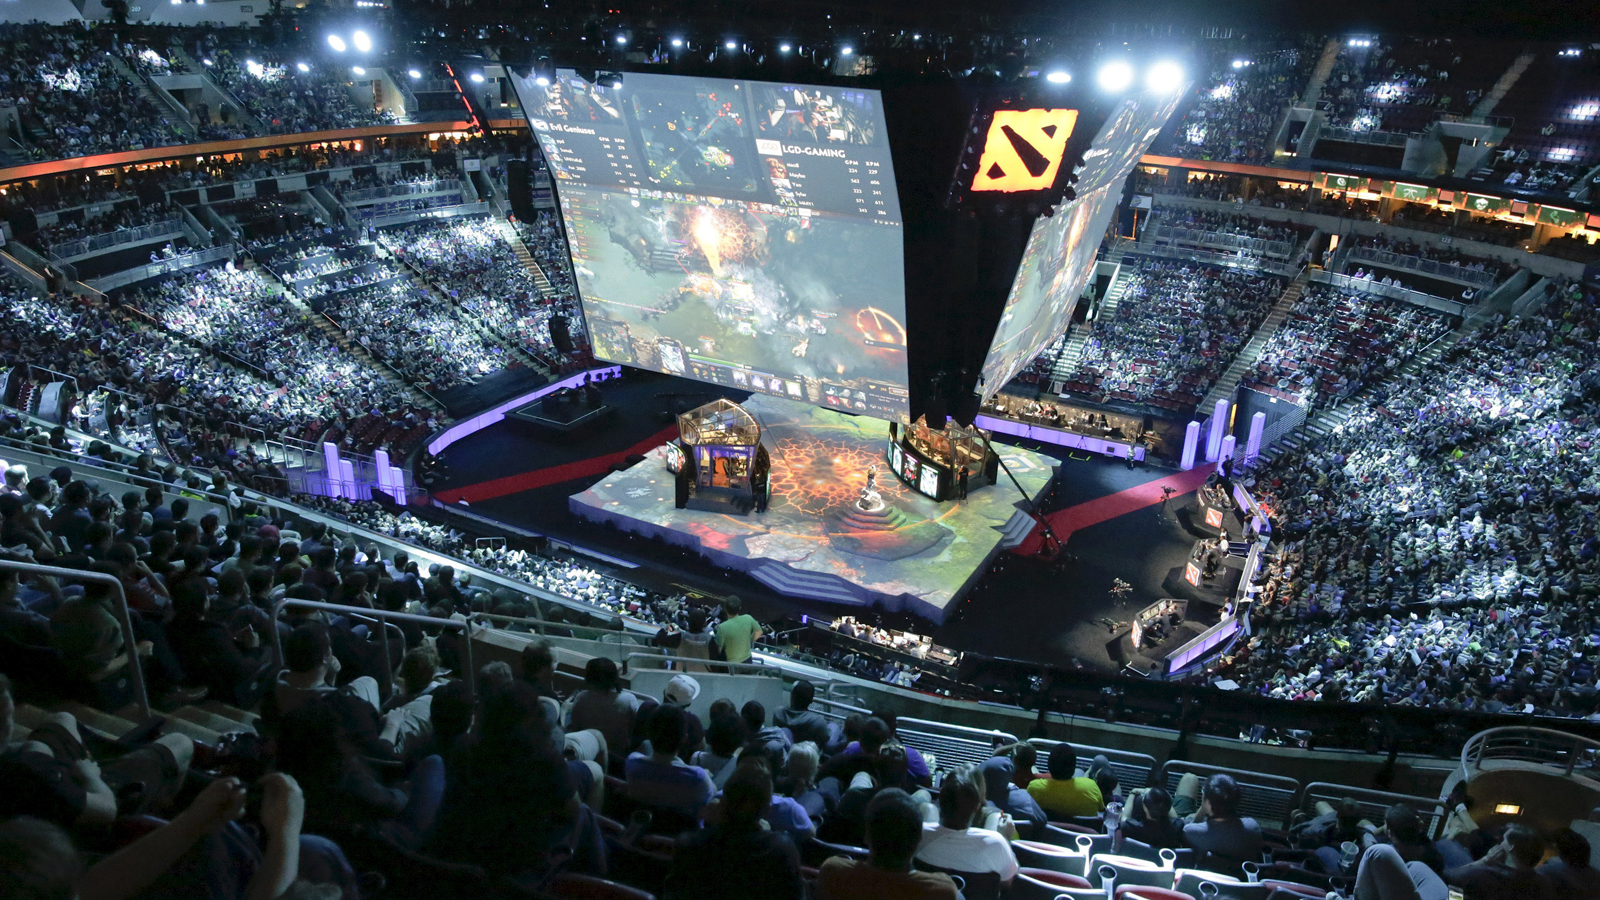 dota 2 international prize pool breaks own record as largest in